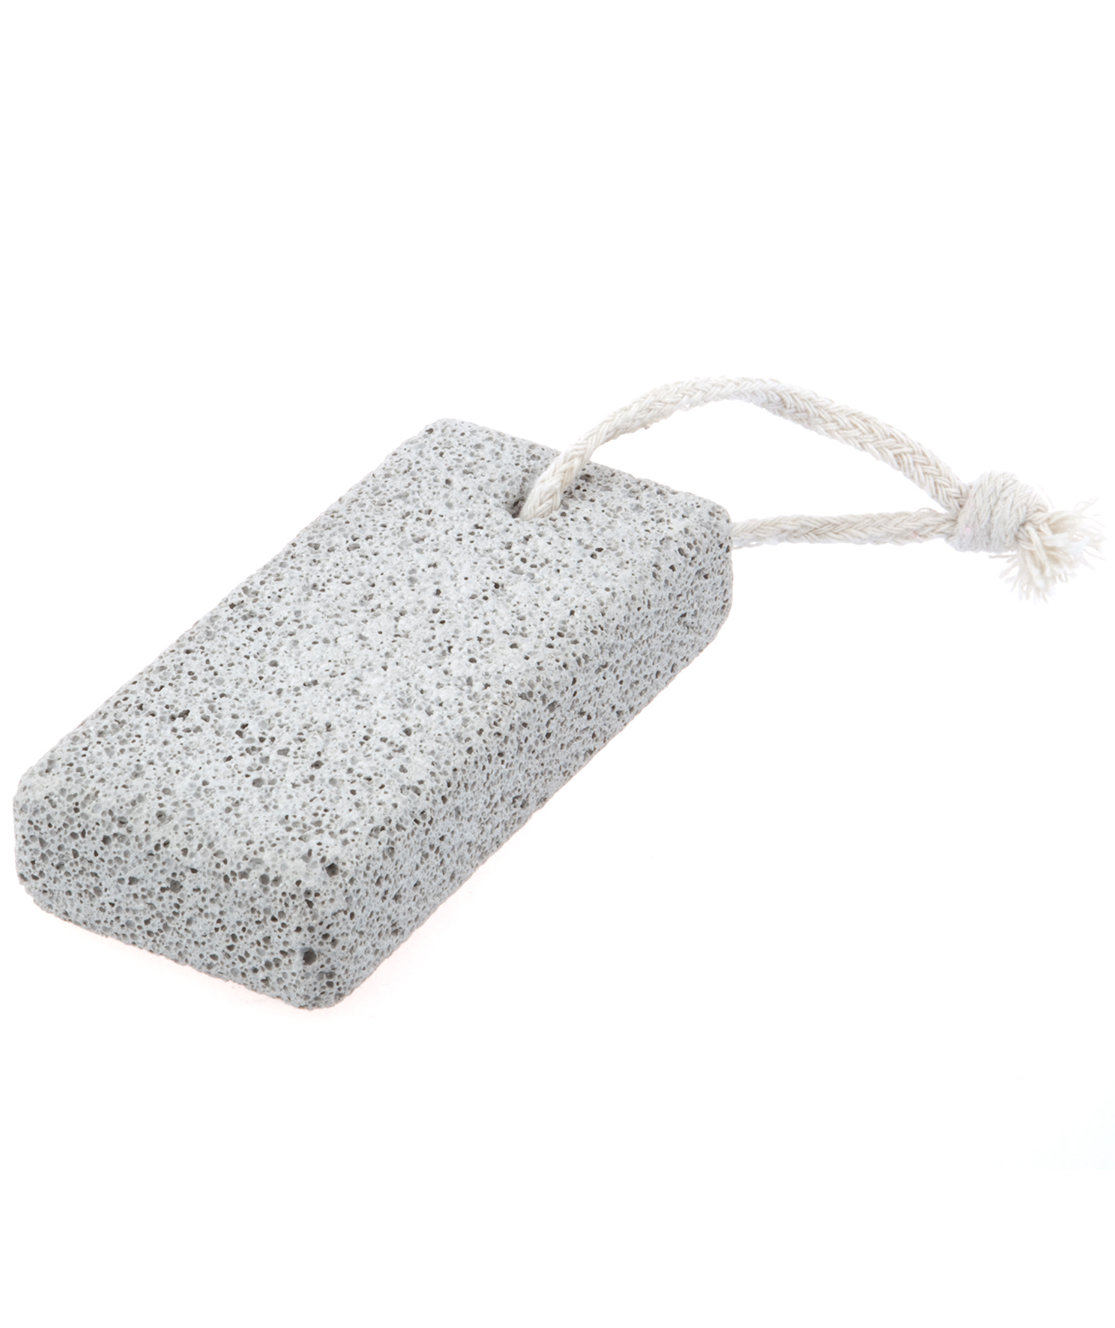 Pumice Stone For Toilet